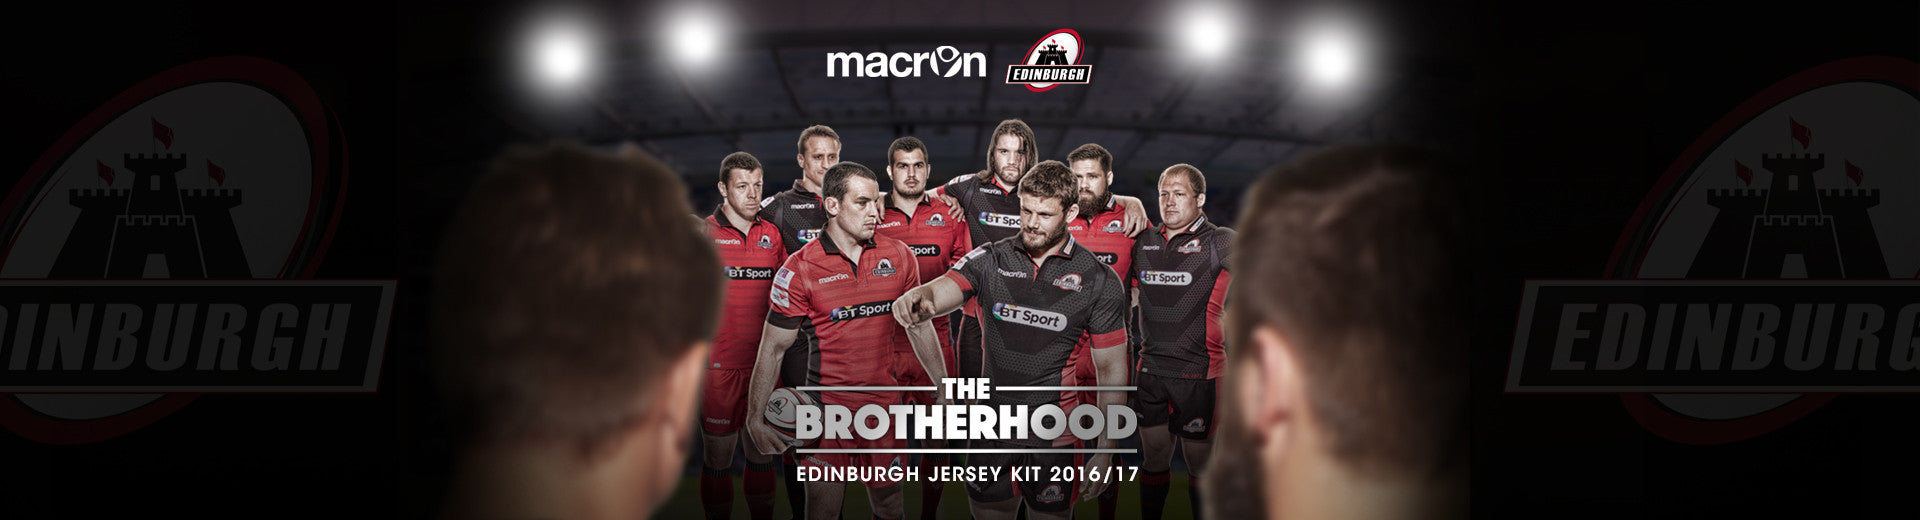 Macron Edinburgh Rugby Home and Away Kits 2016/17